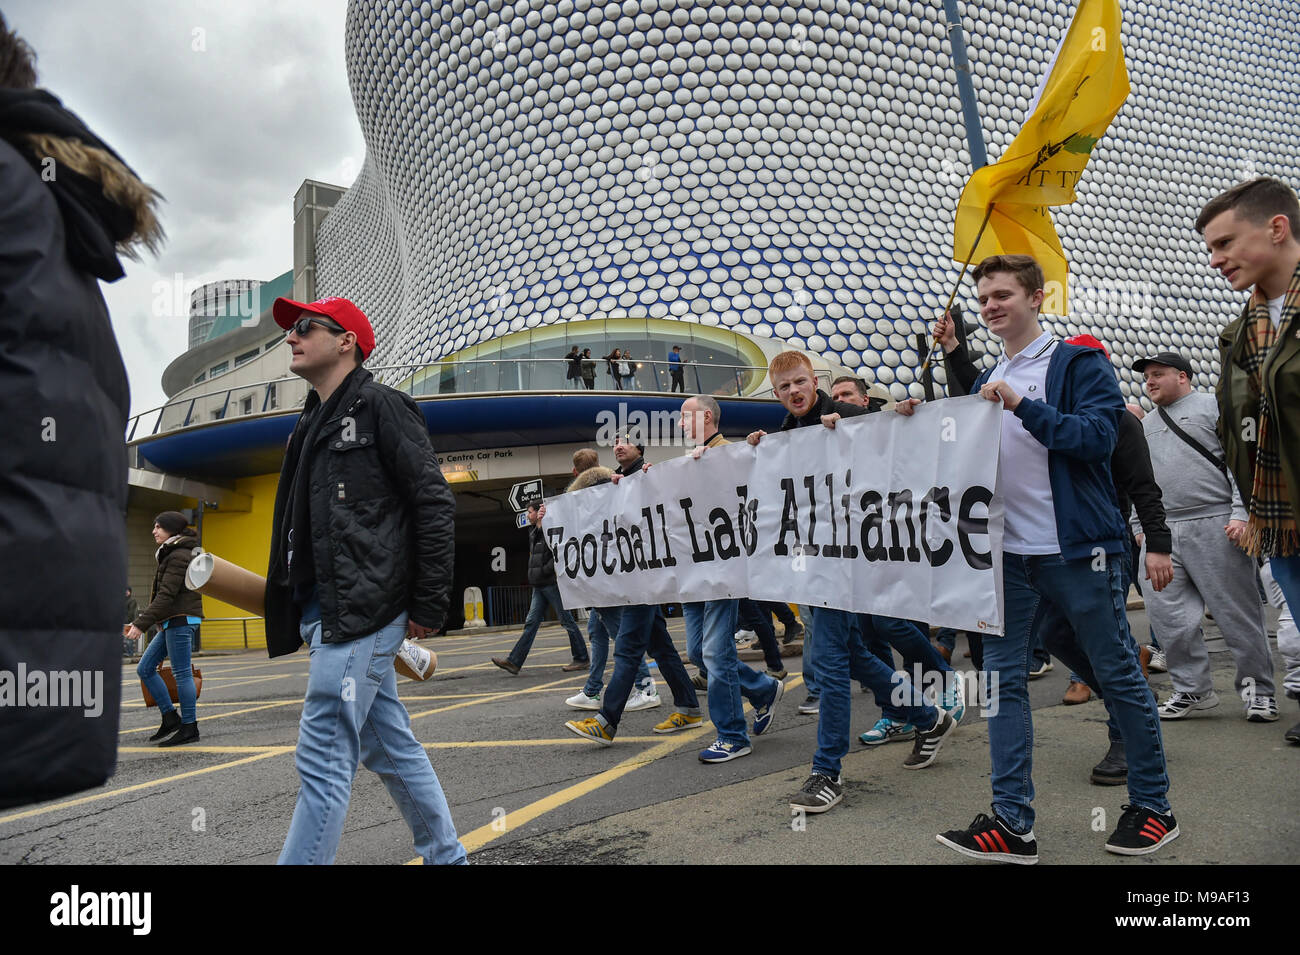 Birmingham, United Kingdom. 24 March 2018. People have gathered for the 'Football Lads Alliance' (FLA) demonstration in Birmingham. There were speeches from John Mieghan, Anne Marie Waters, Luke Nash-Jones and Aline Moraes. After a short march the group dispersed in Edgbaston St.  Credit: Peter Manning/Alamy Live News - Stock Image